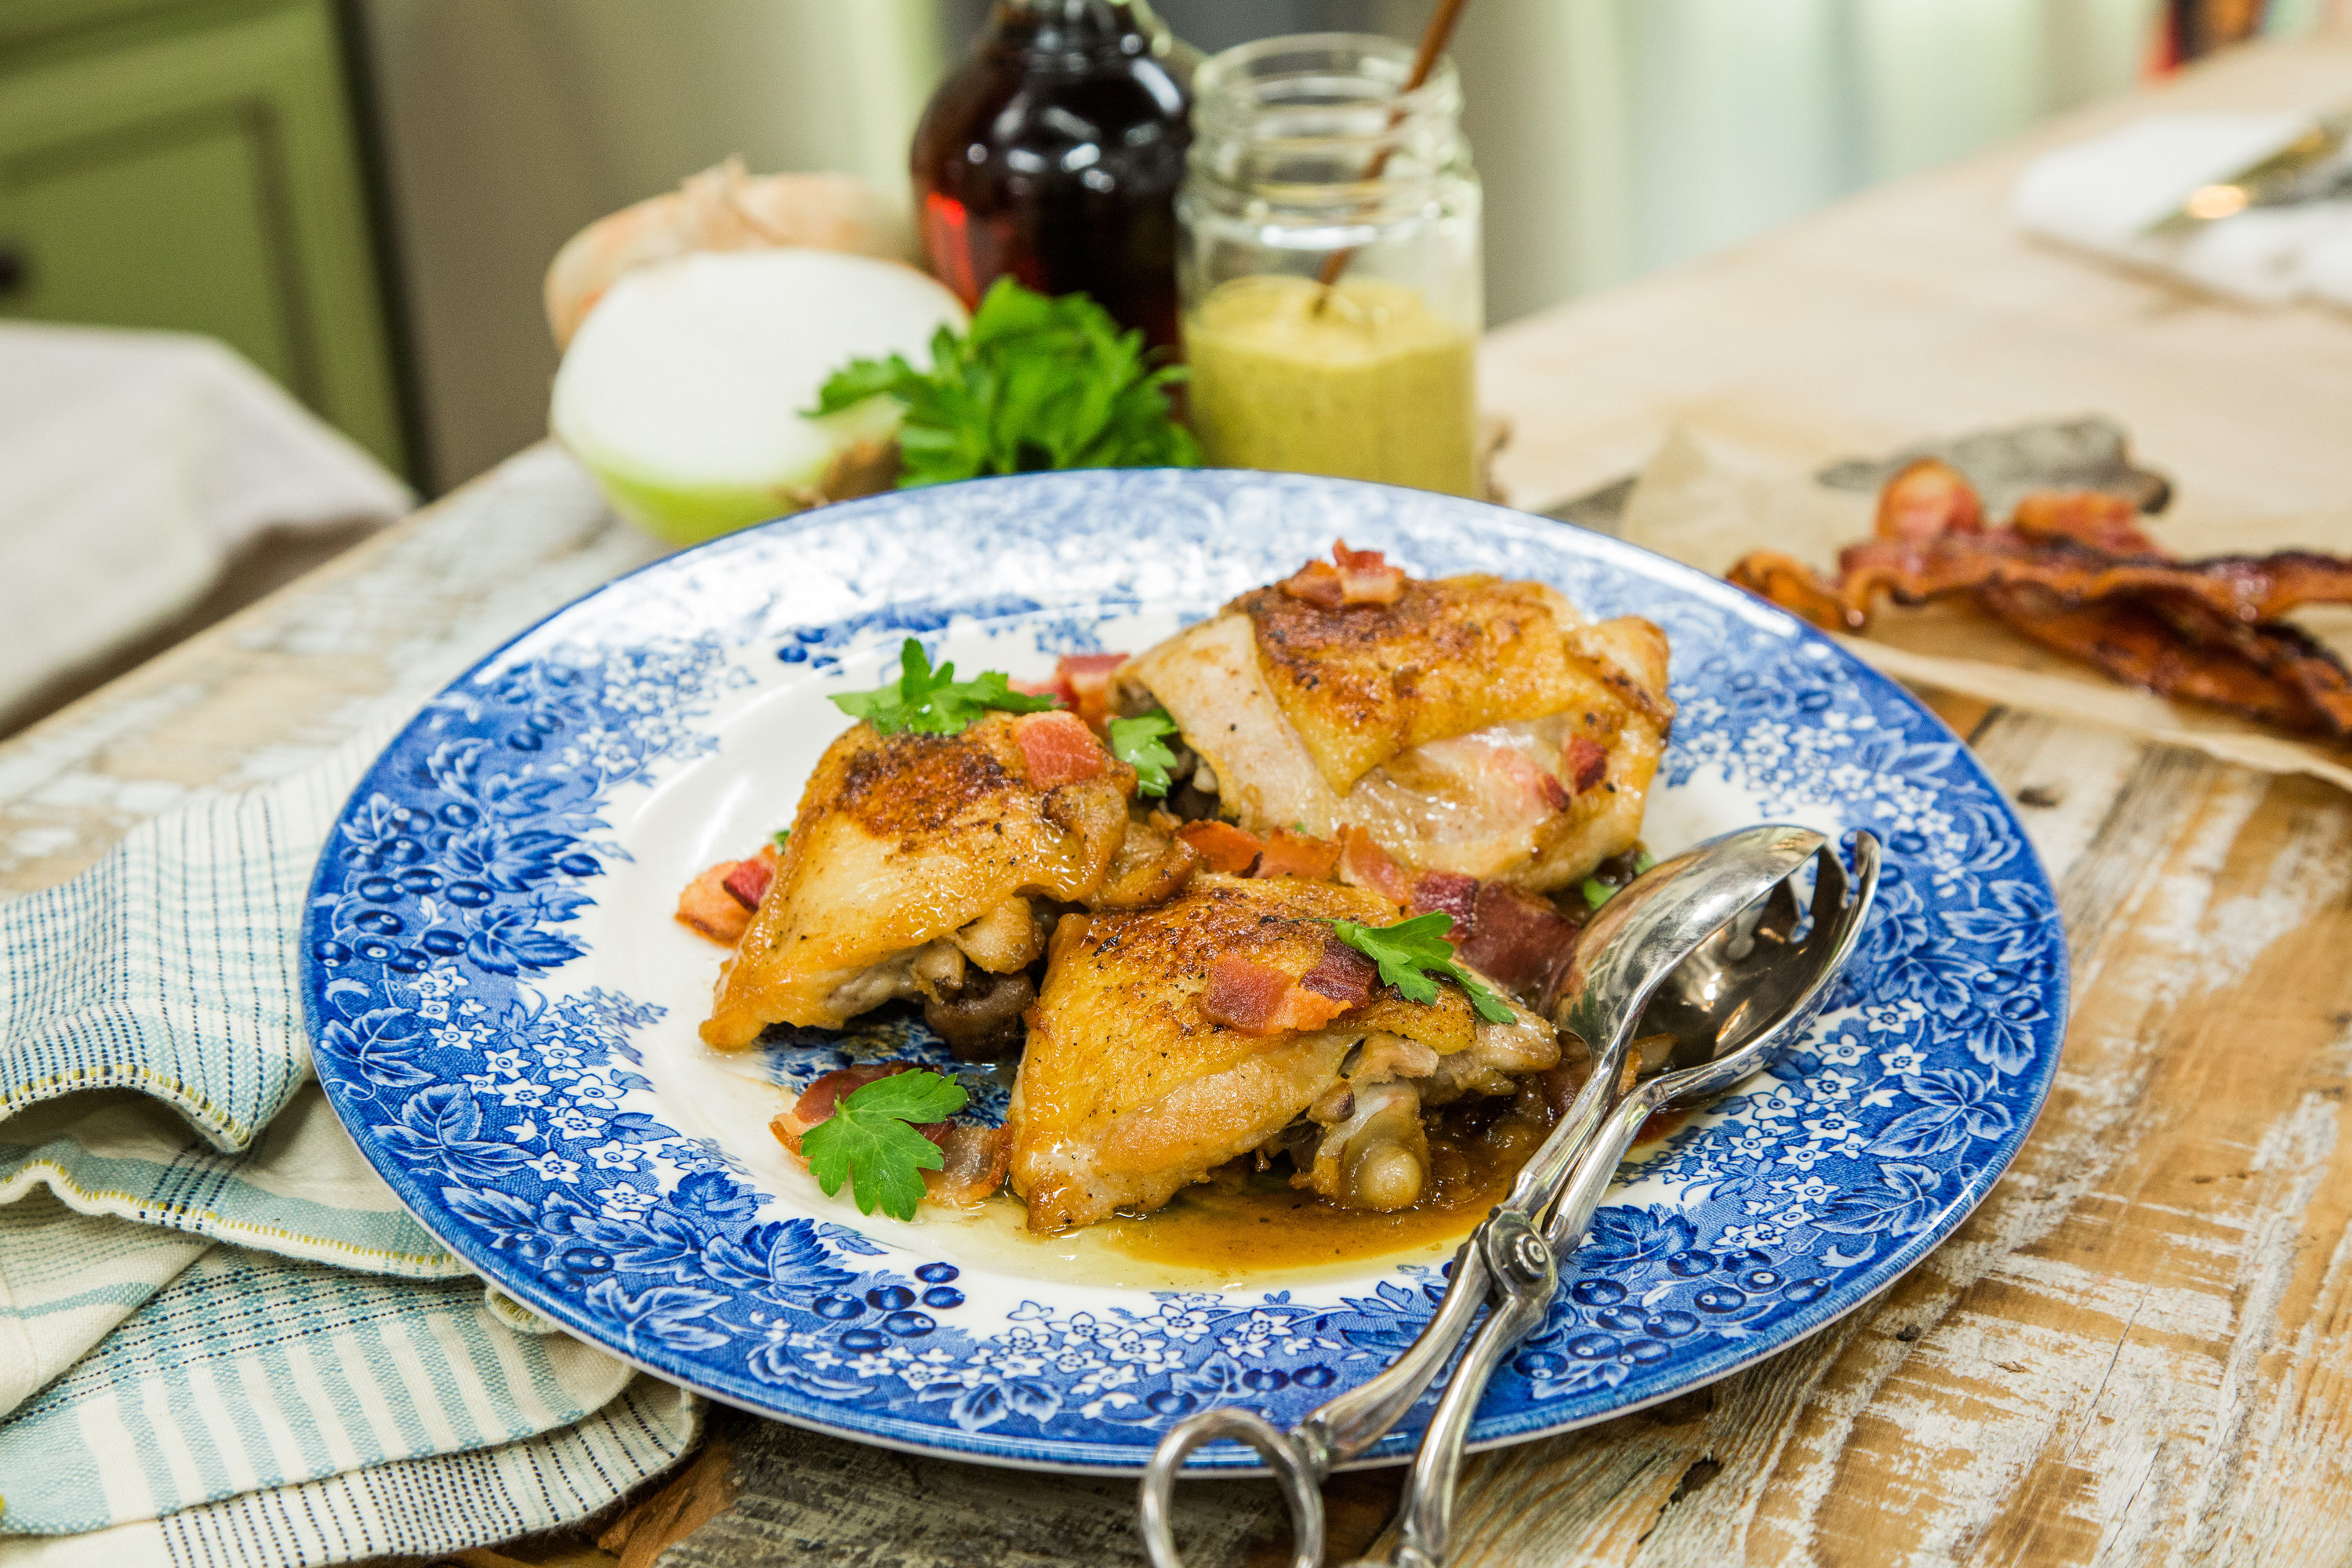 Recipes pan roasted chicken with bacon maple glaze hallmark channel forumfinder Image collections